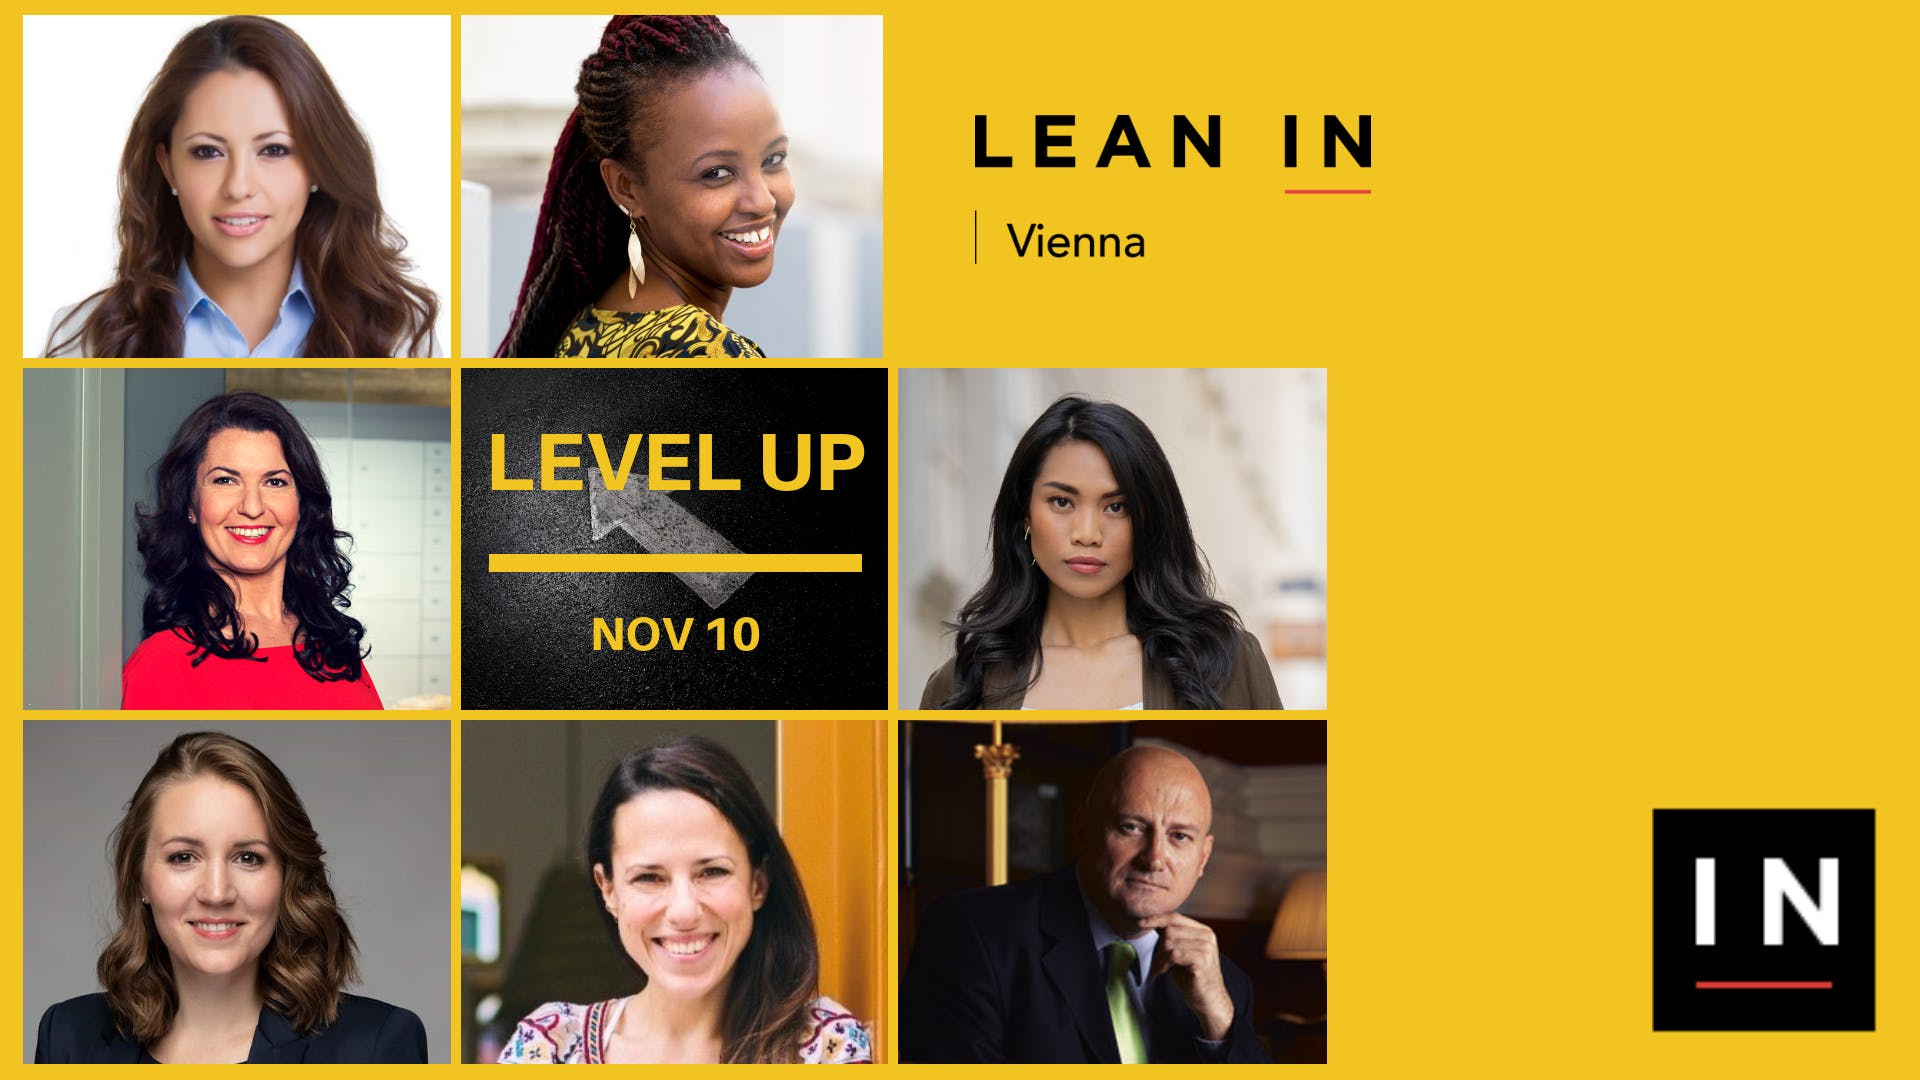 LEVEL UP: A LEAN IN VIENNA event to equip wom